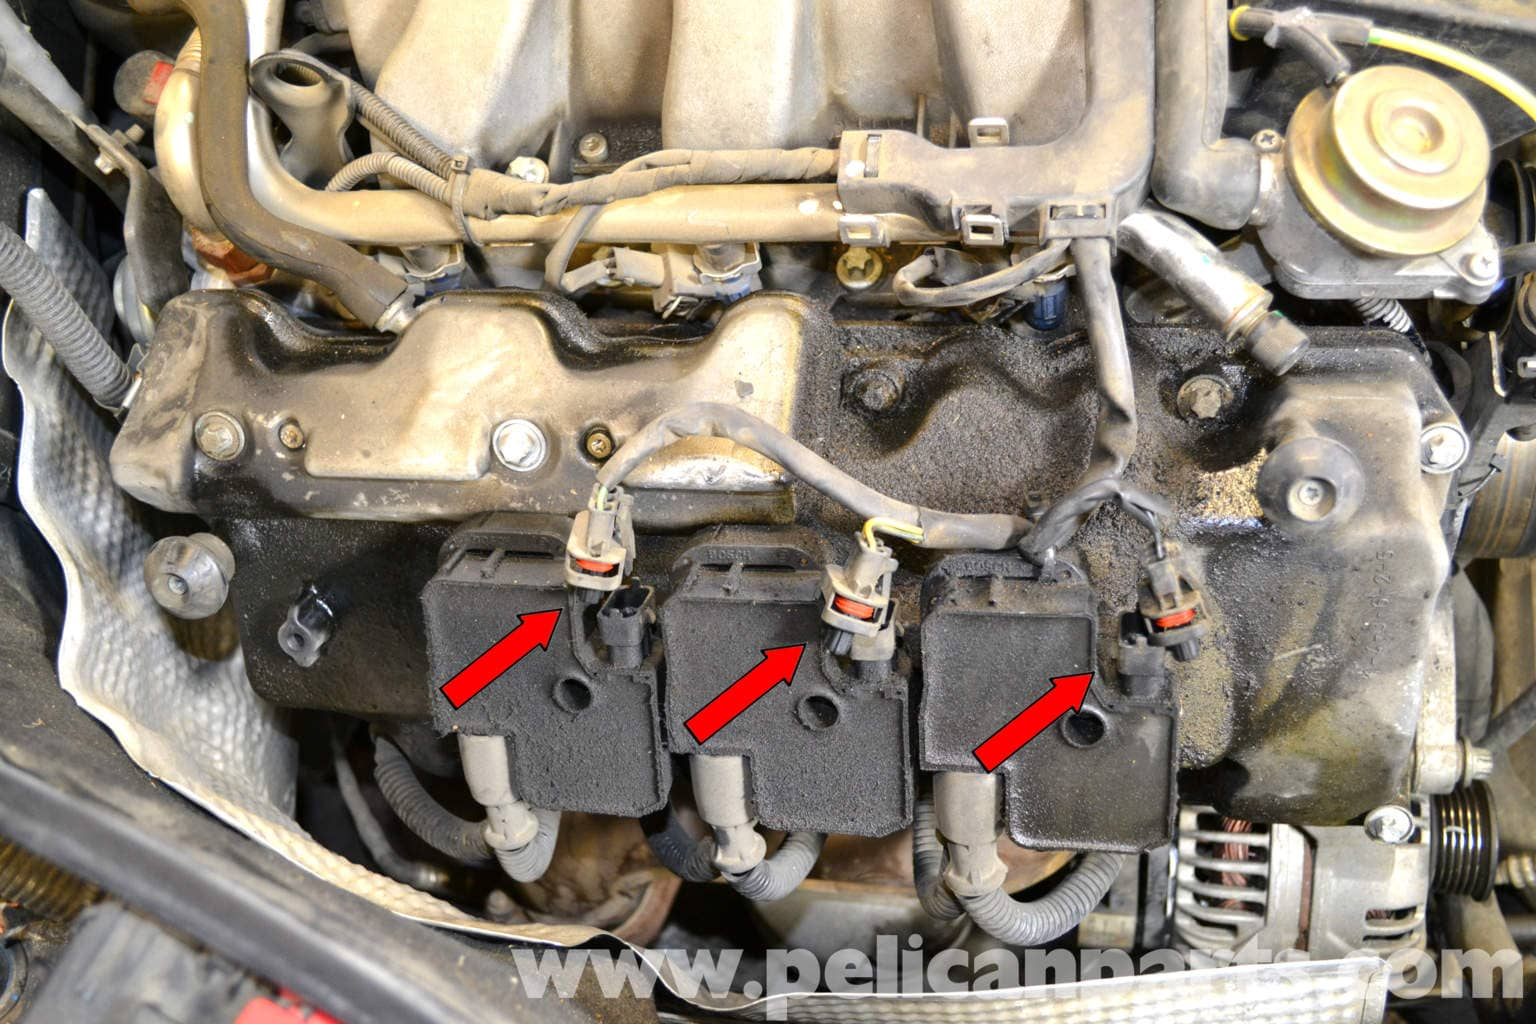 Mercedes-benz W203 Valve Cover Gasket Replacement